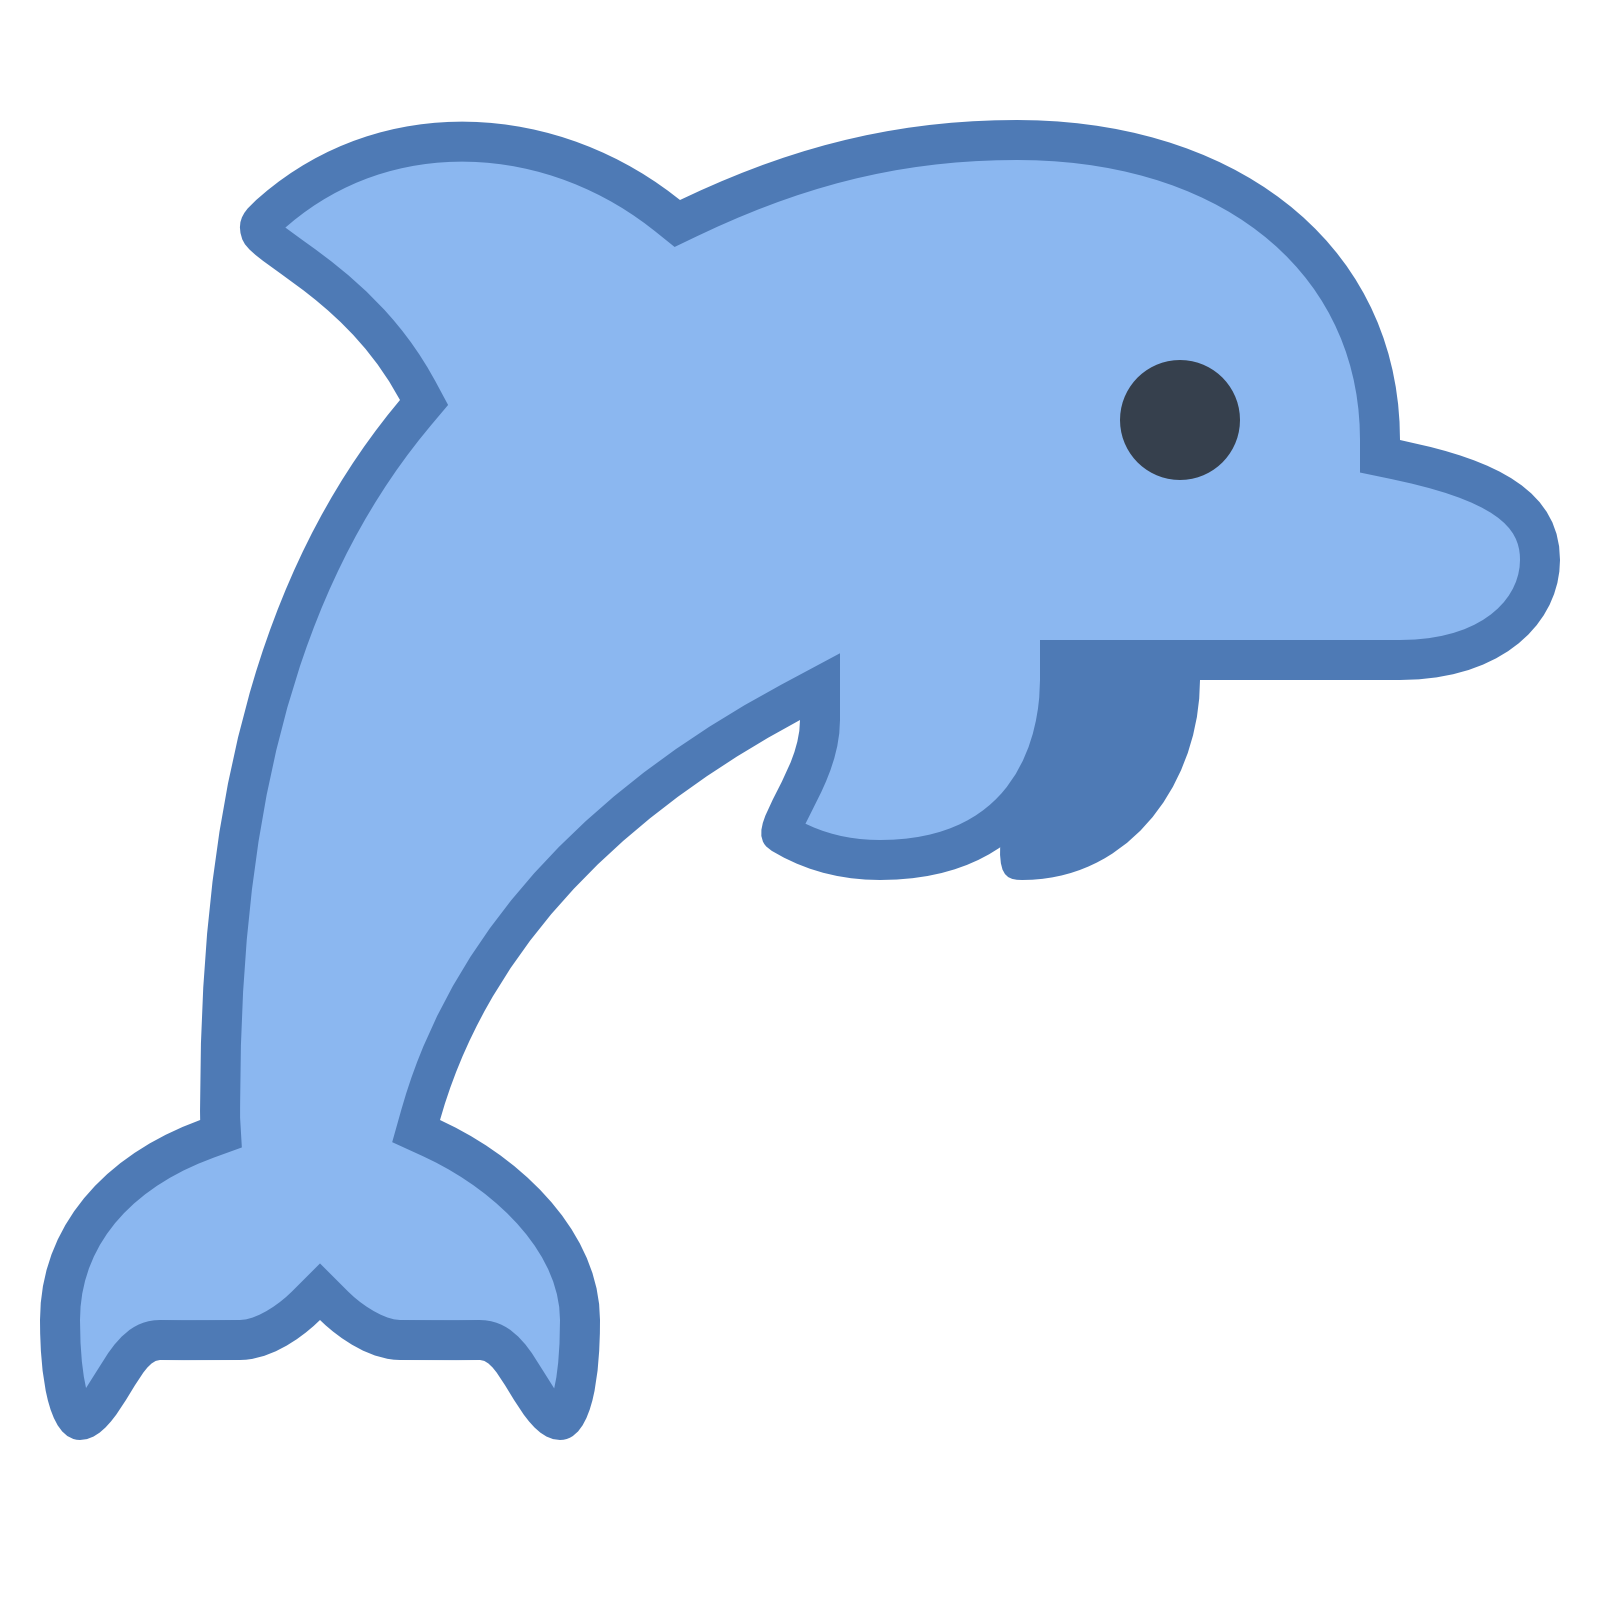 dolphin icon download icons #22011